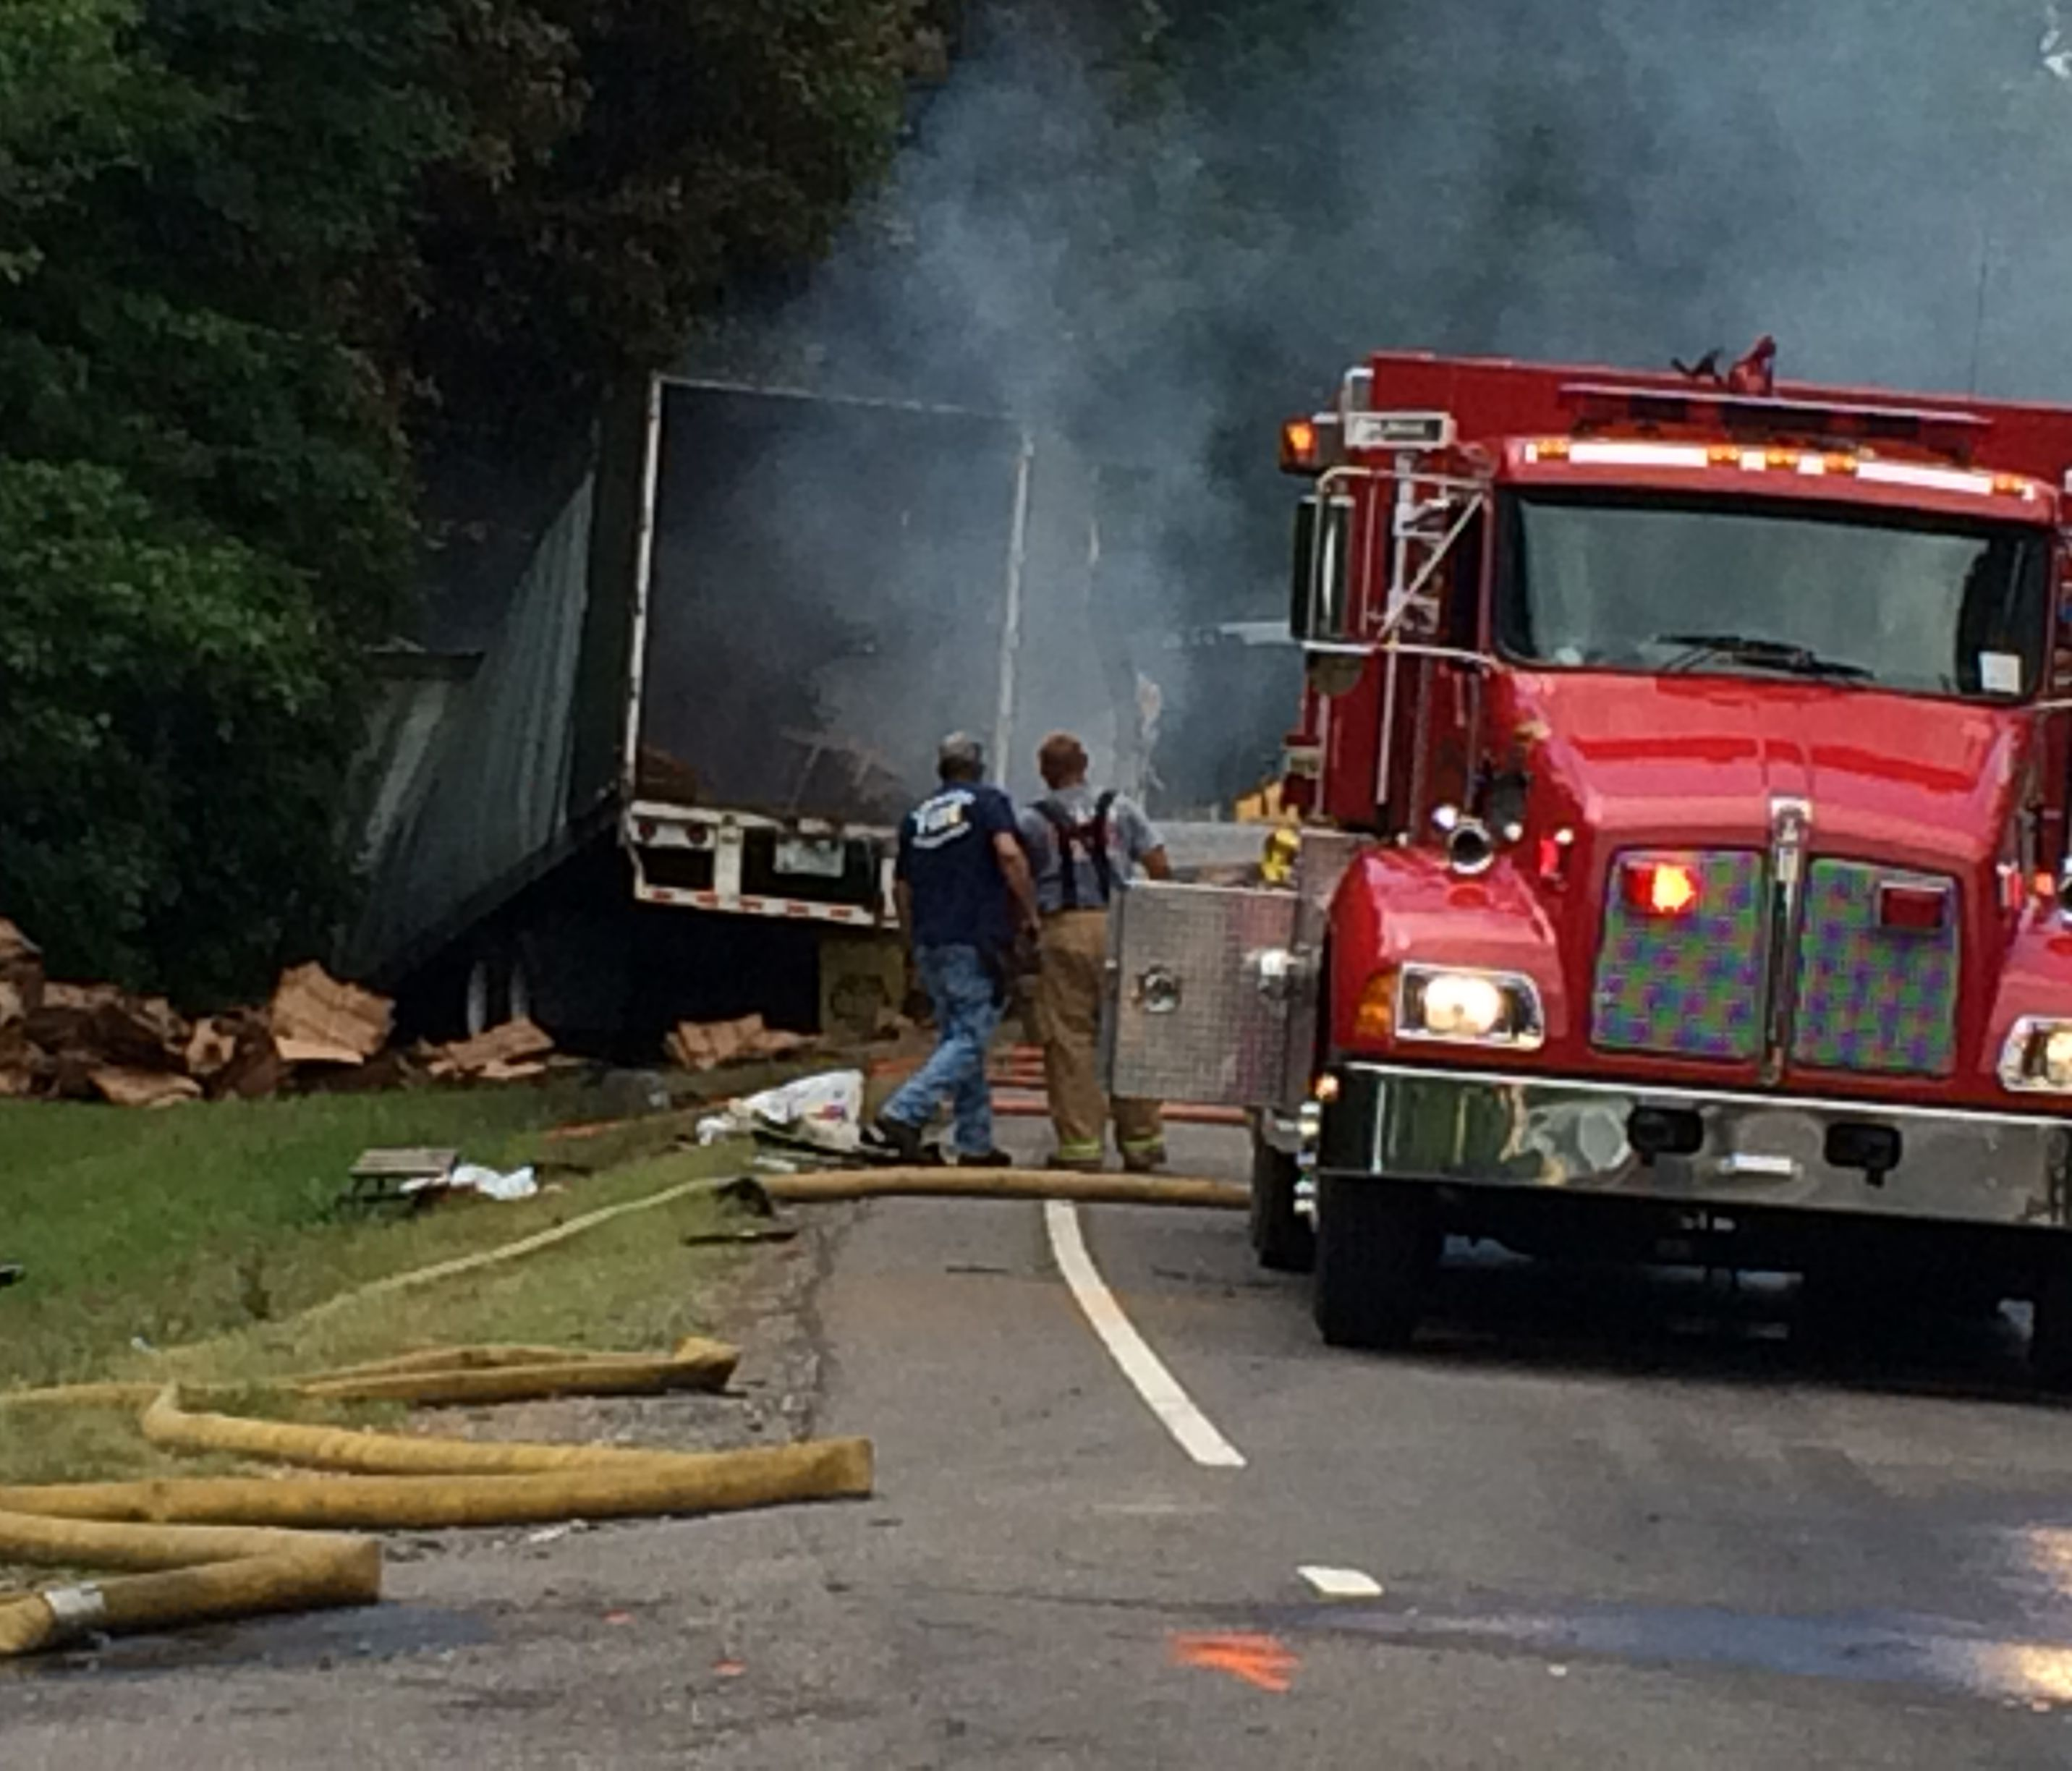 Driver Charged With DWI In U S  64 Fiery Wreck | wfmynews2 com